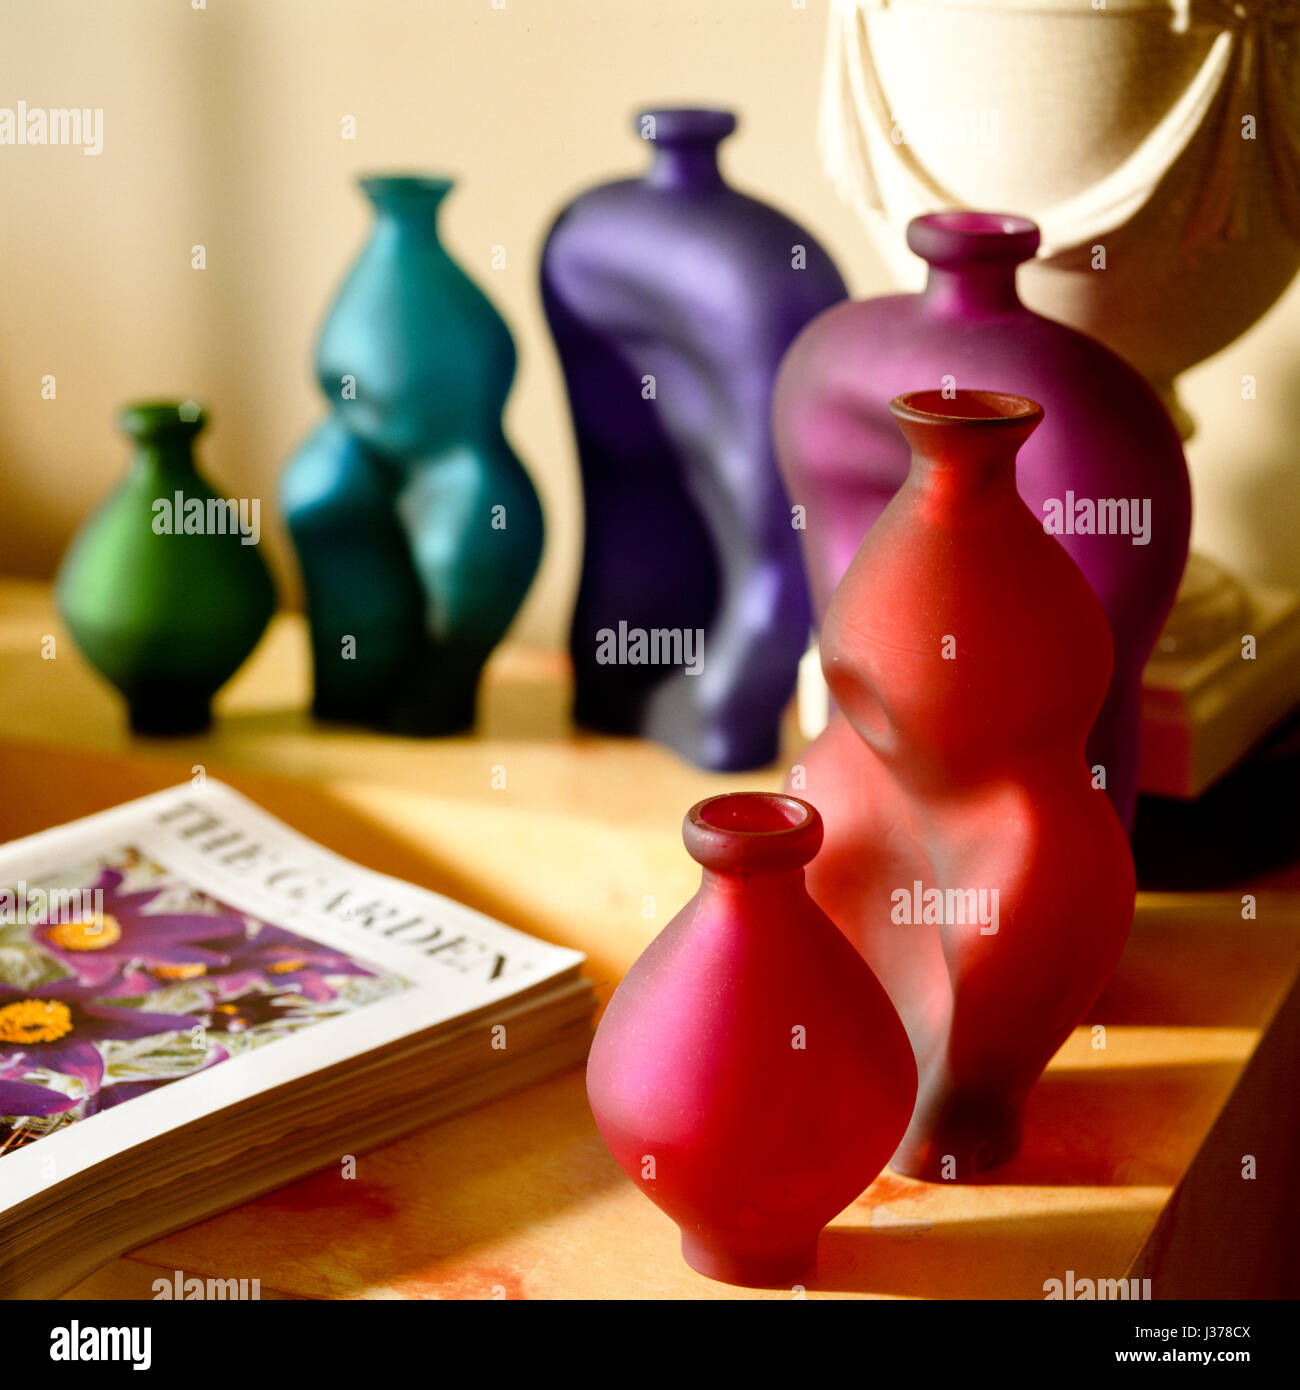 Colored vases and book. - Stock Image